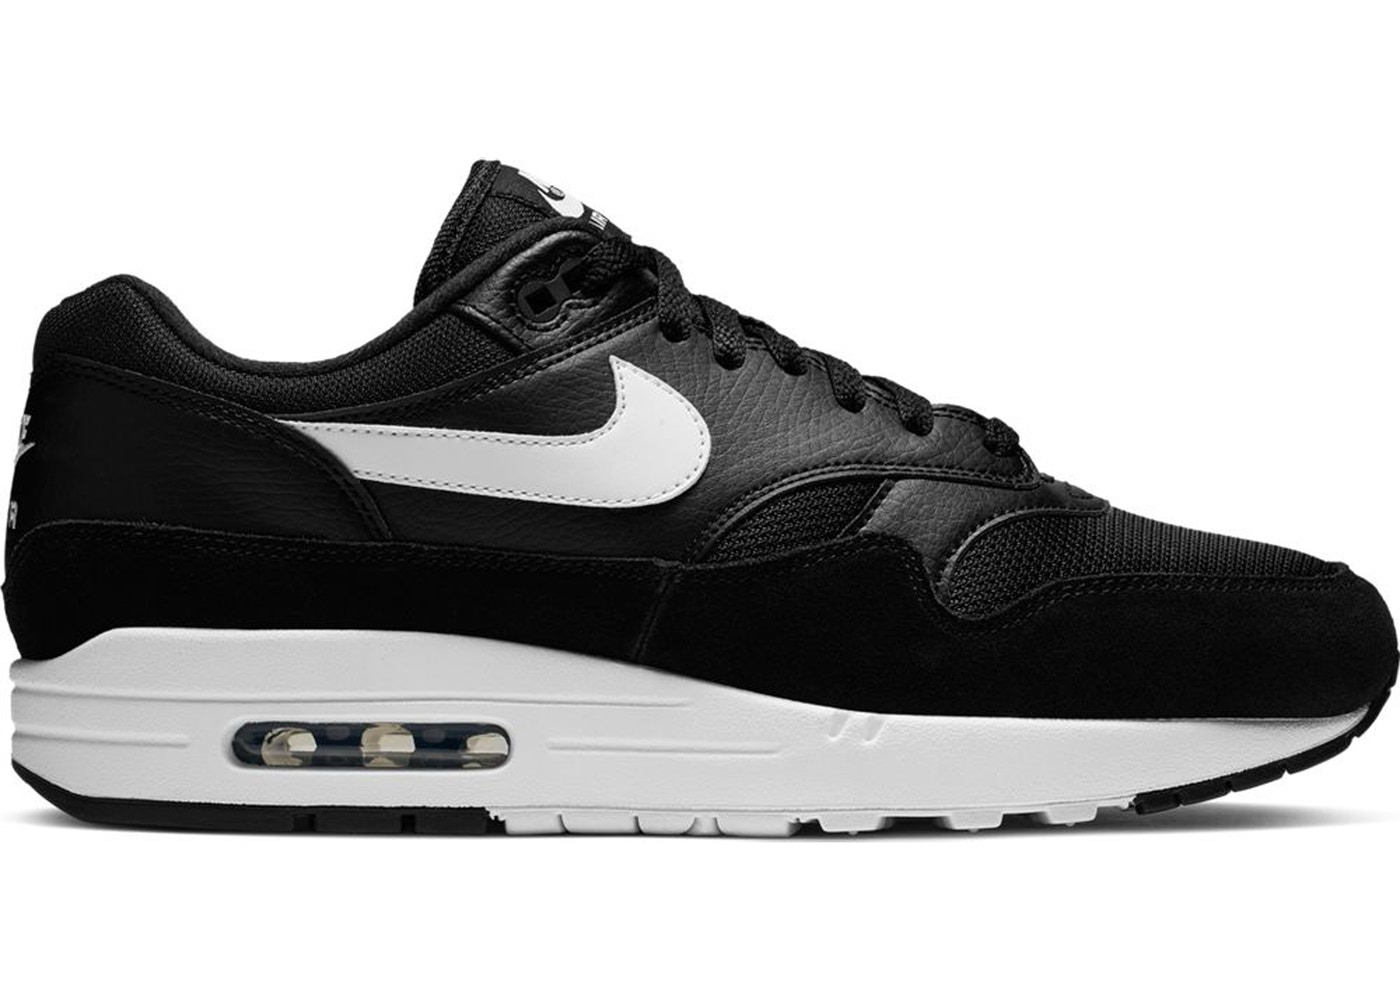 Nike Air Max 1 Black White (2019)